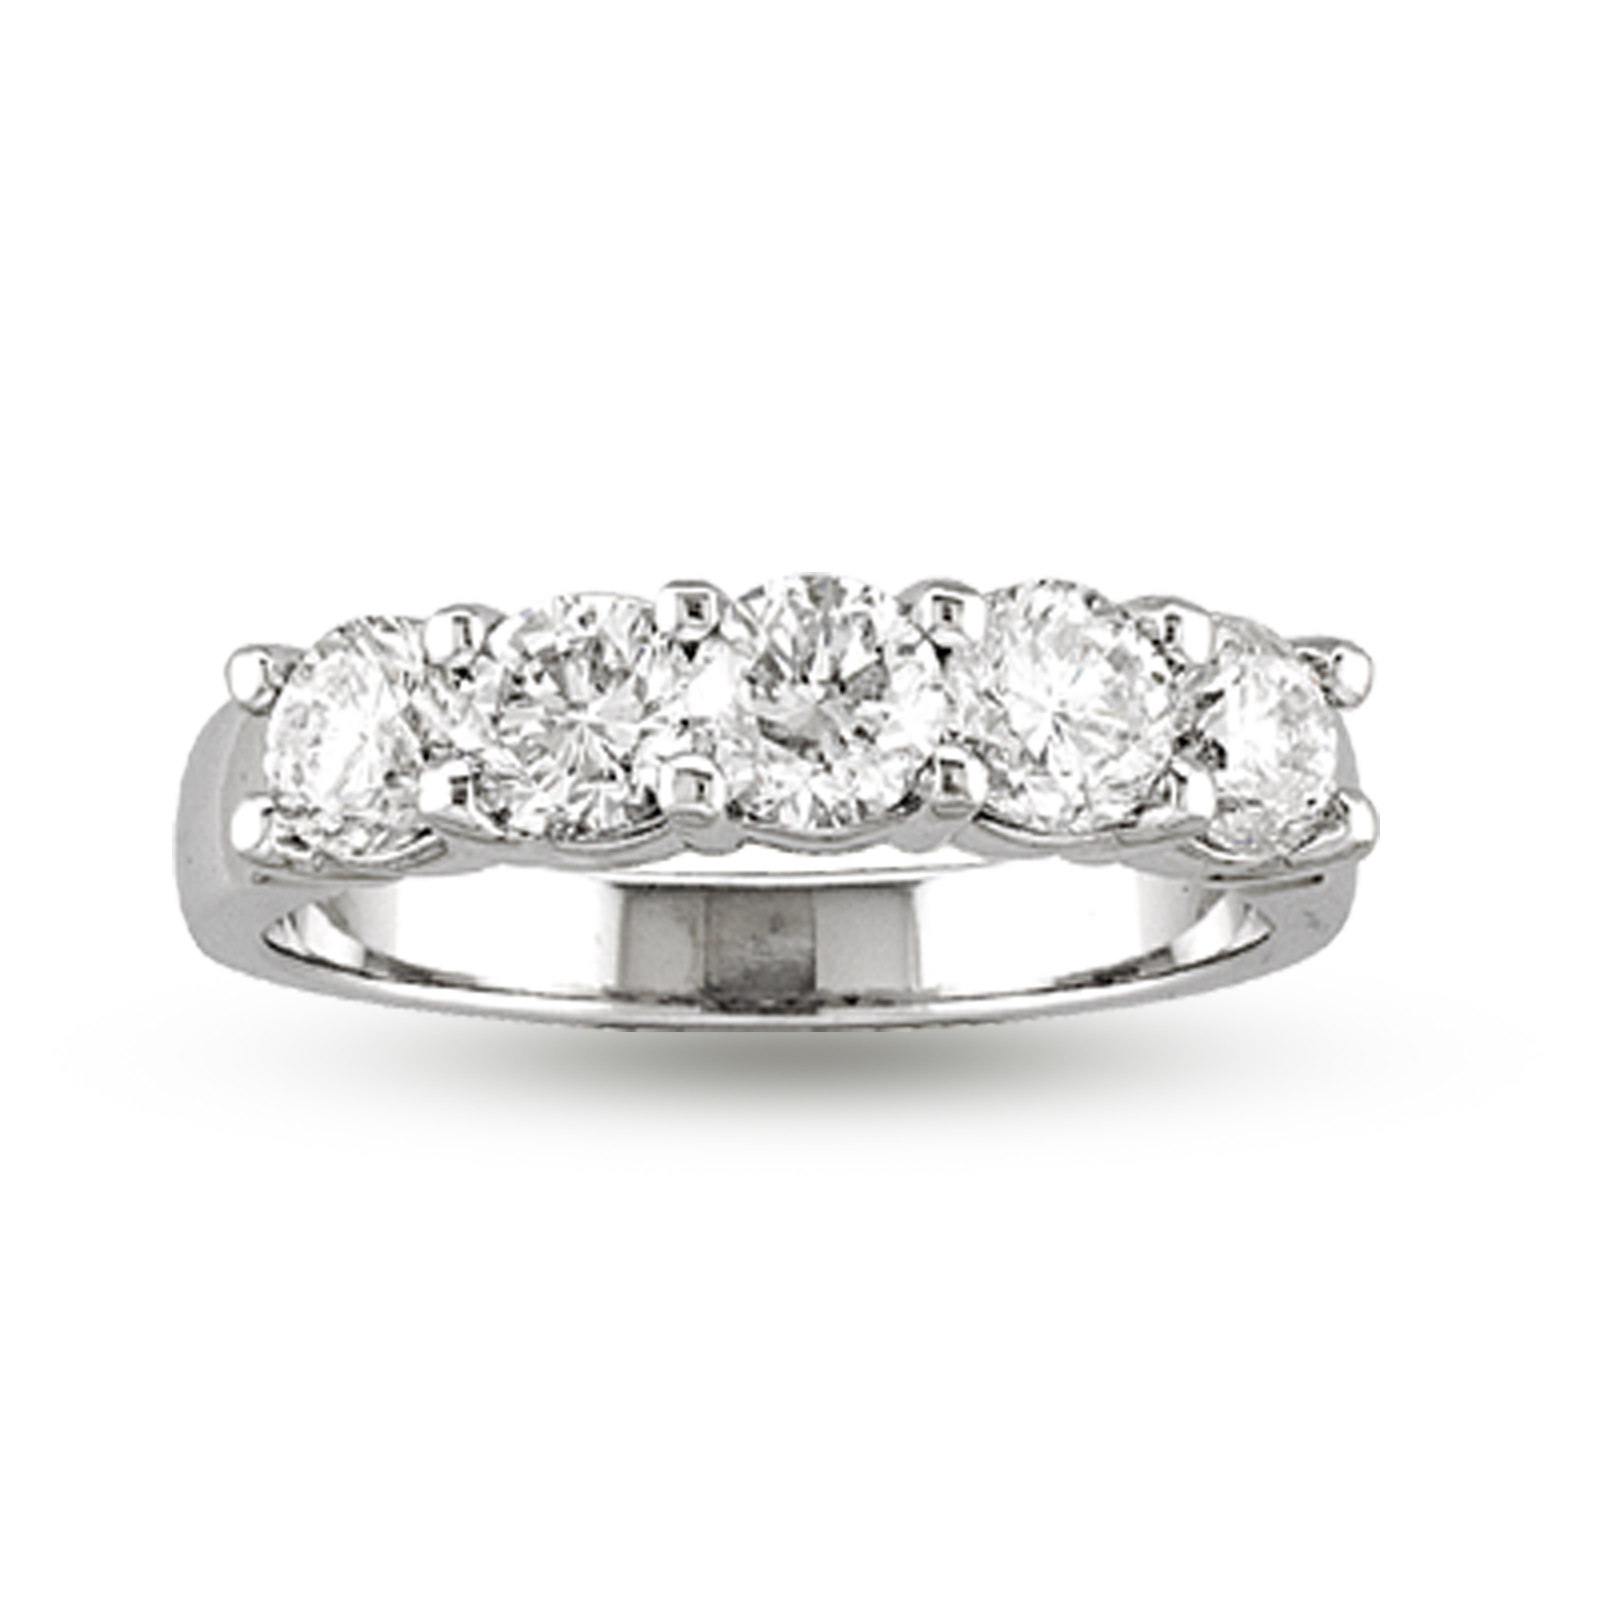 View 2.00ct tw 5 Stone Round Diamonds Shared Prong Anniversary or Wedding Band Bridal Ring G-H SI Diamond Quality 14k Gold